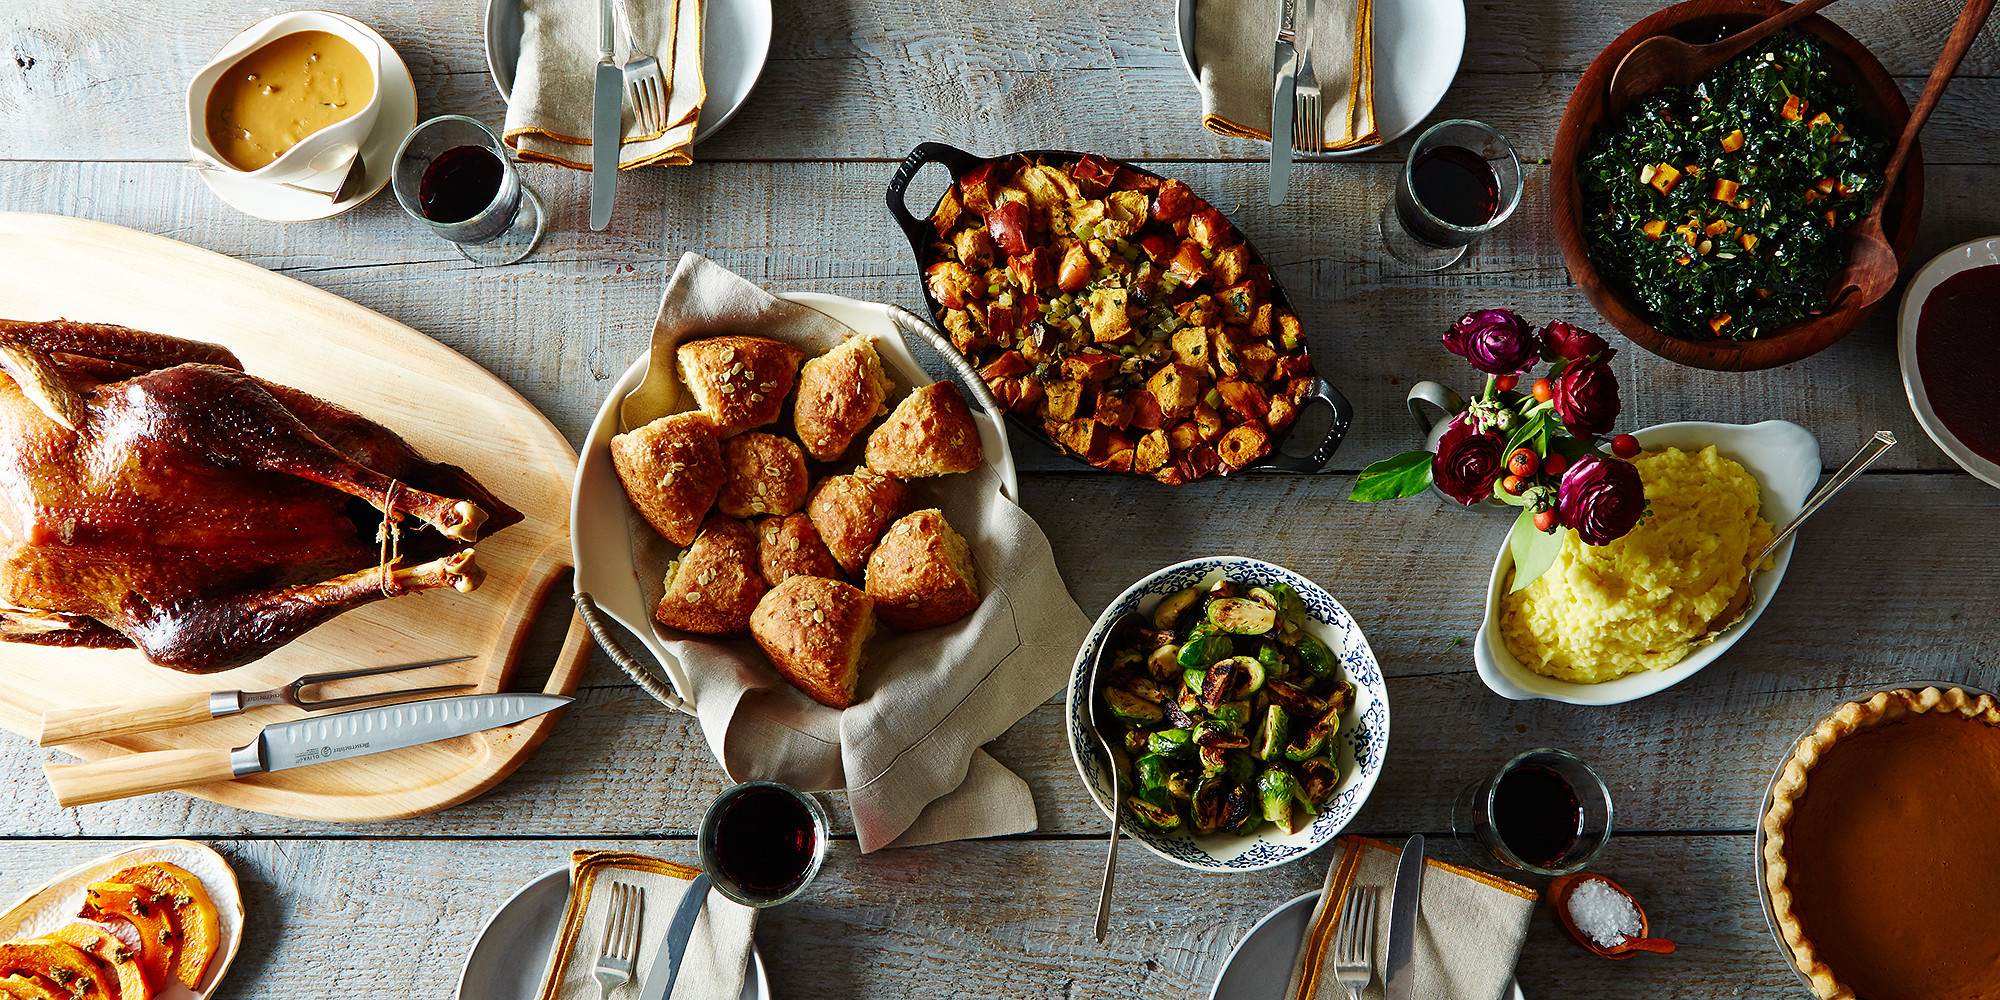 Ina Garten Make Ahead Thanksgiving  5 Tips for Making Your Thanksgiving Dinner Ahead